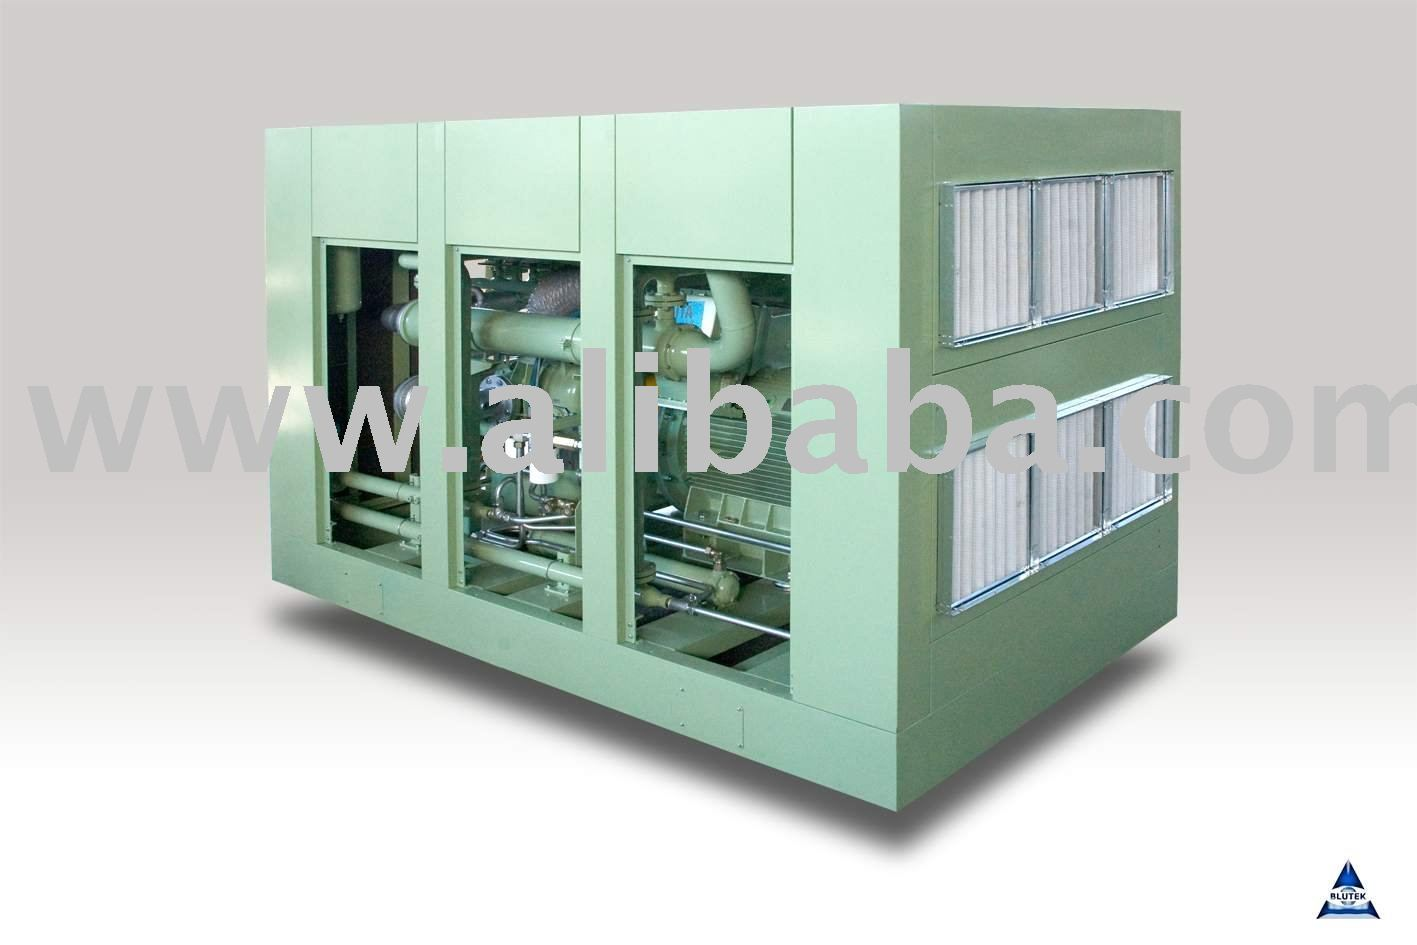 OIL FREE SCREW COMPRESSORS API 619 FOR OIL&GAS APPLICATION